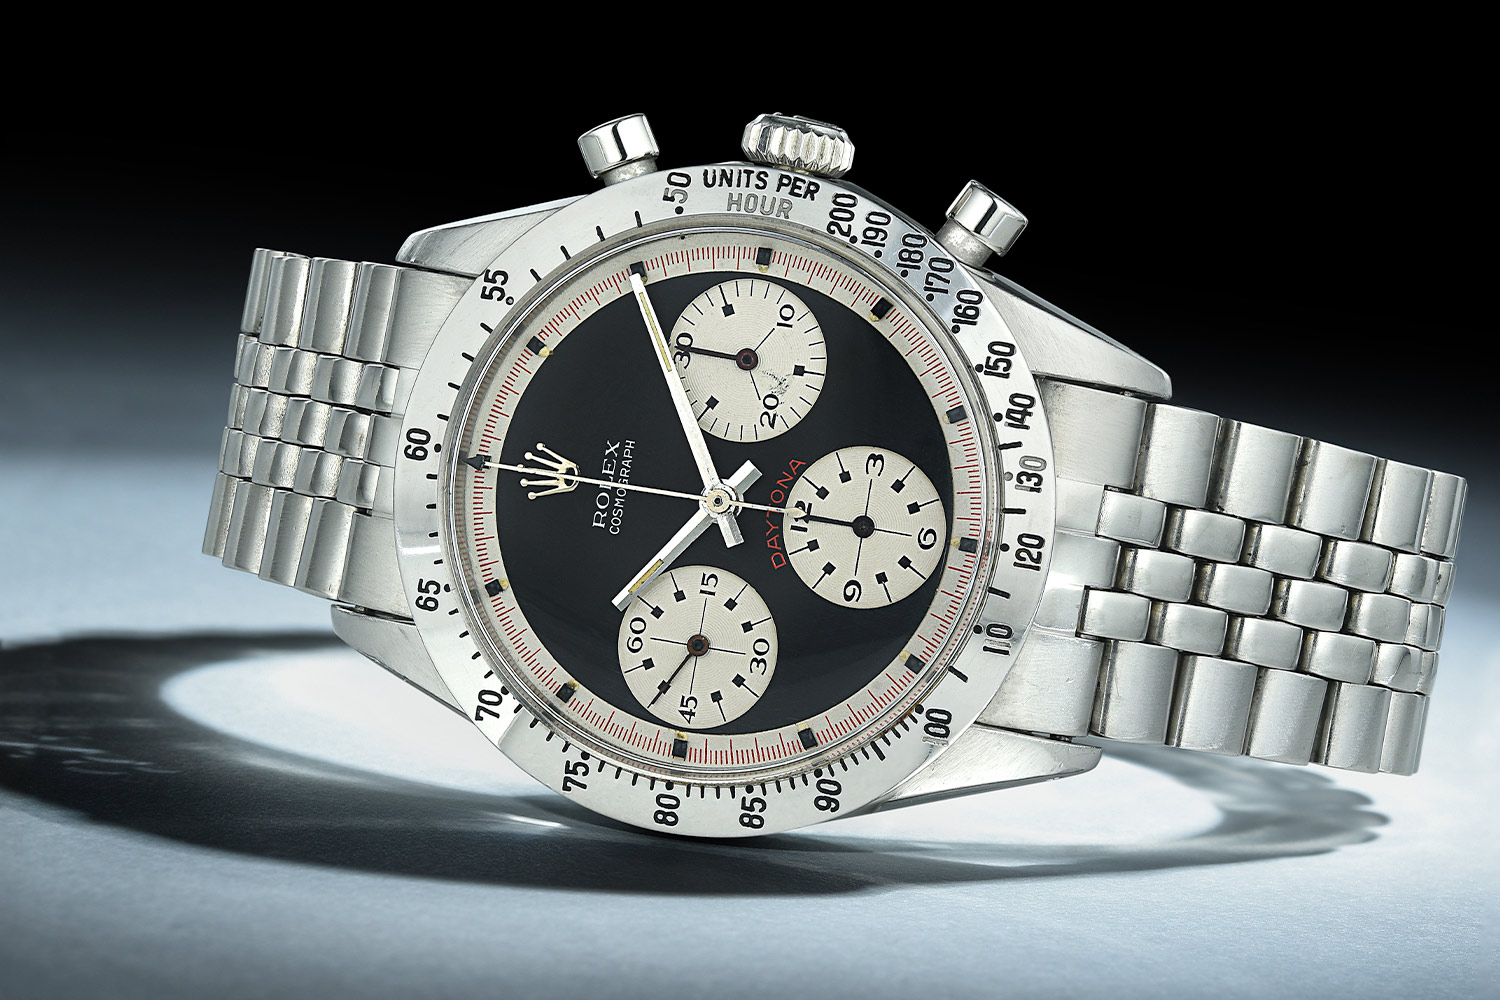 Rolex Paul Newman Daytona 6239 Black Dial - Fortuna Auction NYC